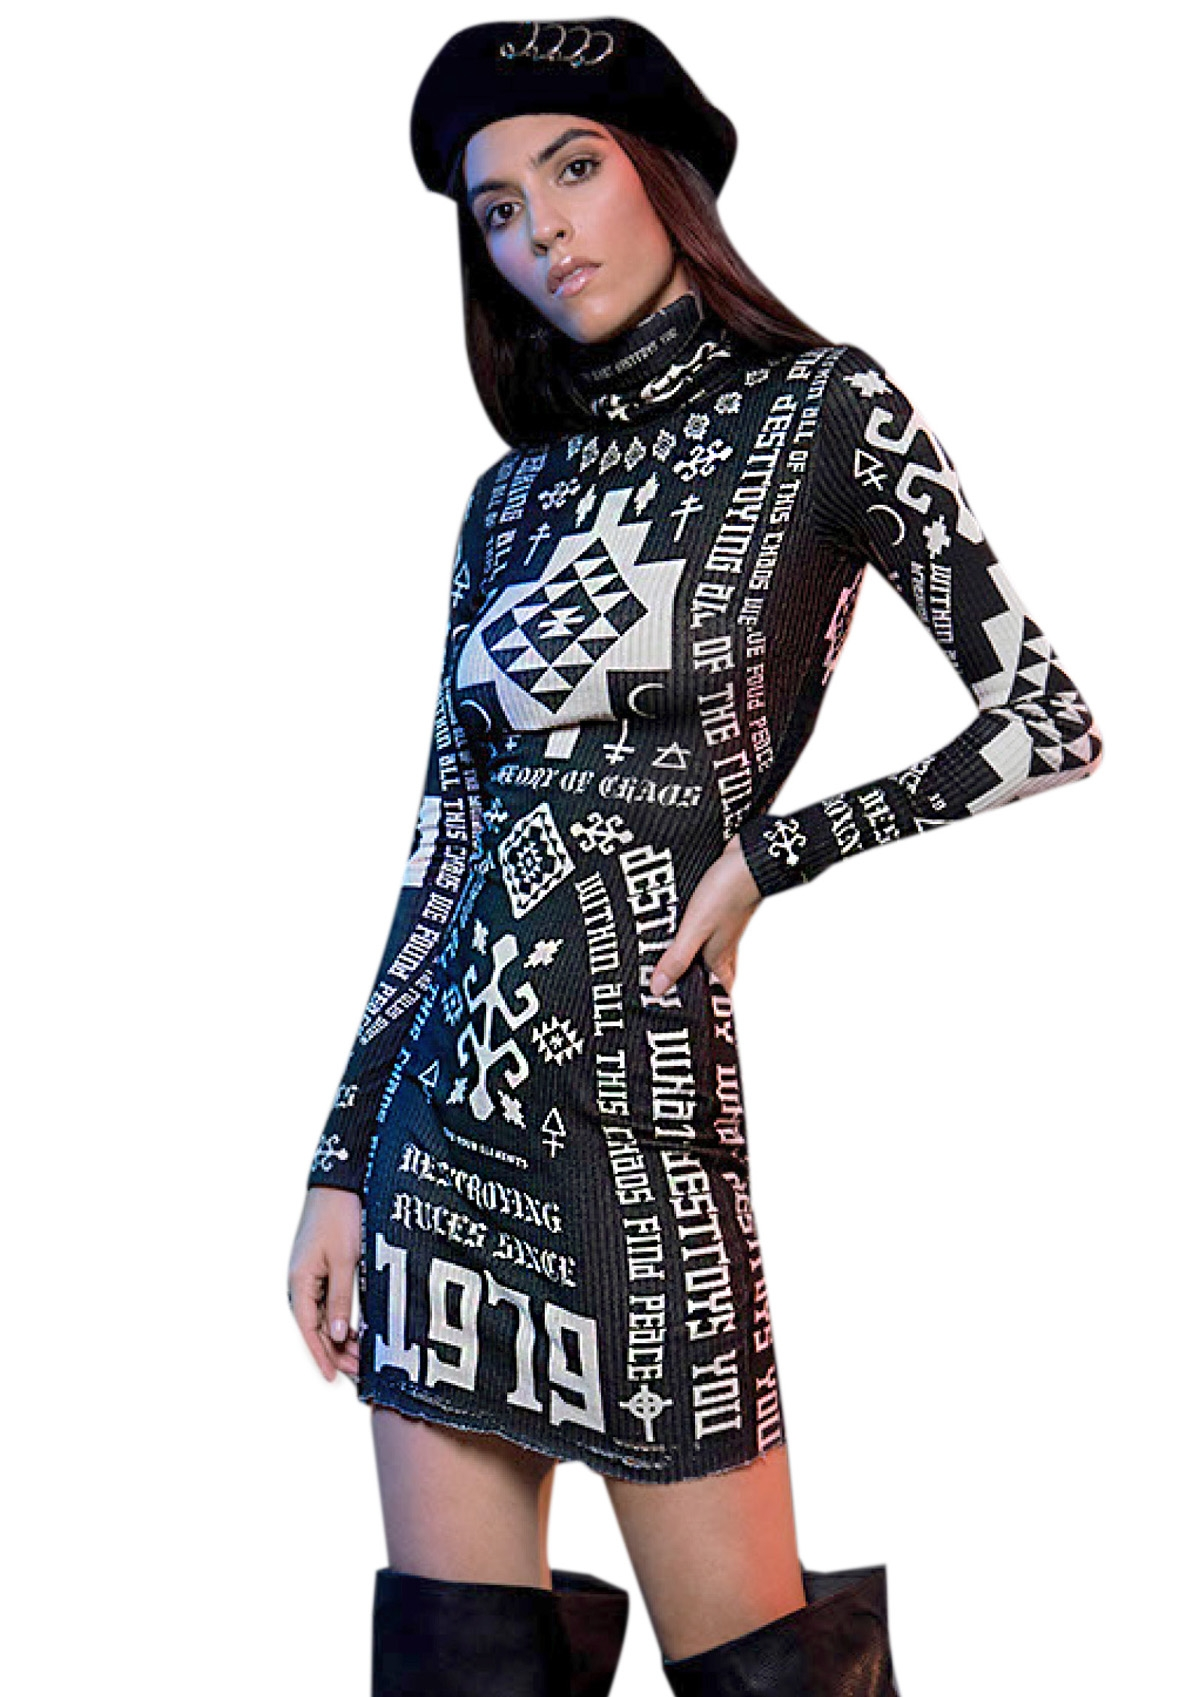 PEACE AND CHAOS DESTROY DRESS - Abebablom Store 0eee63a3df1